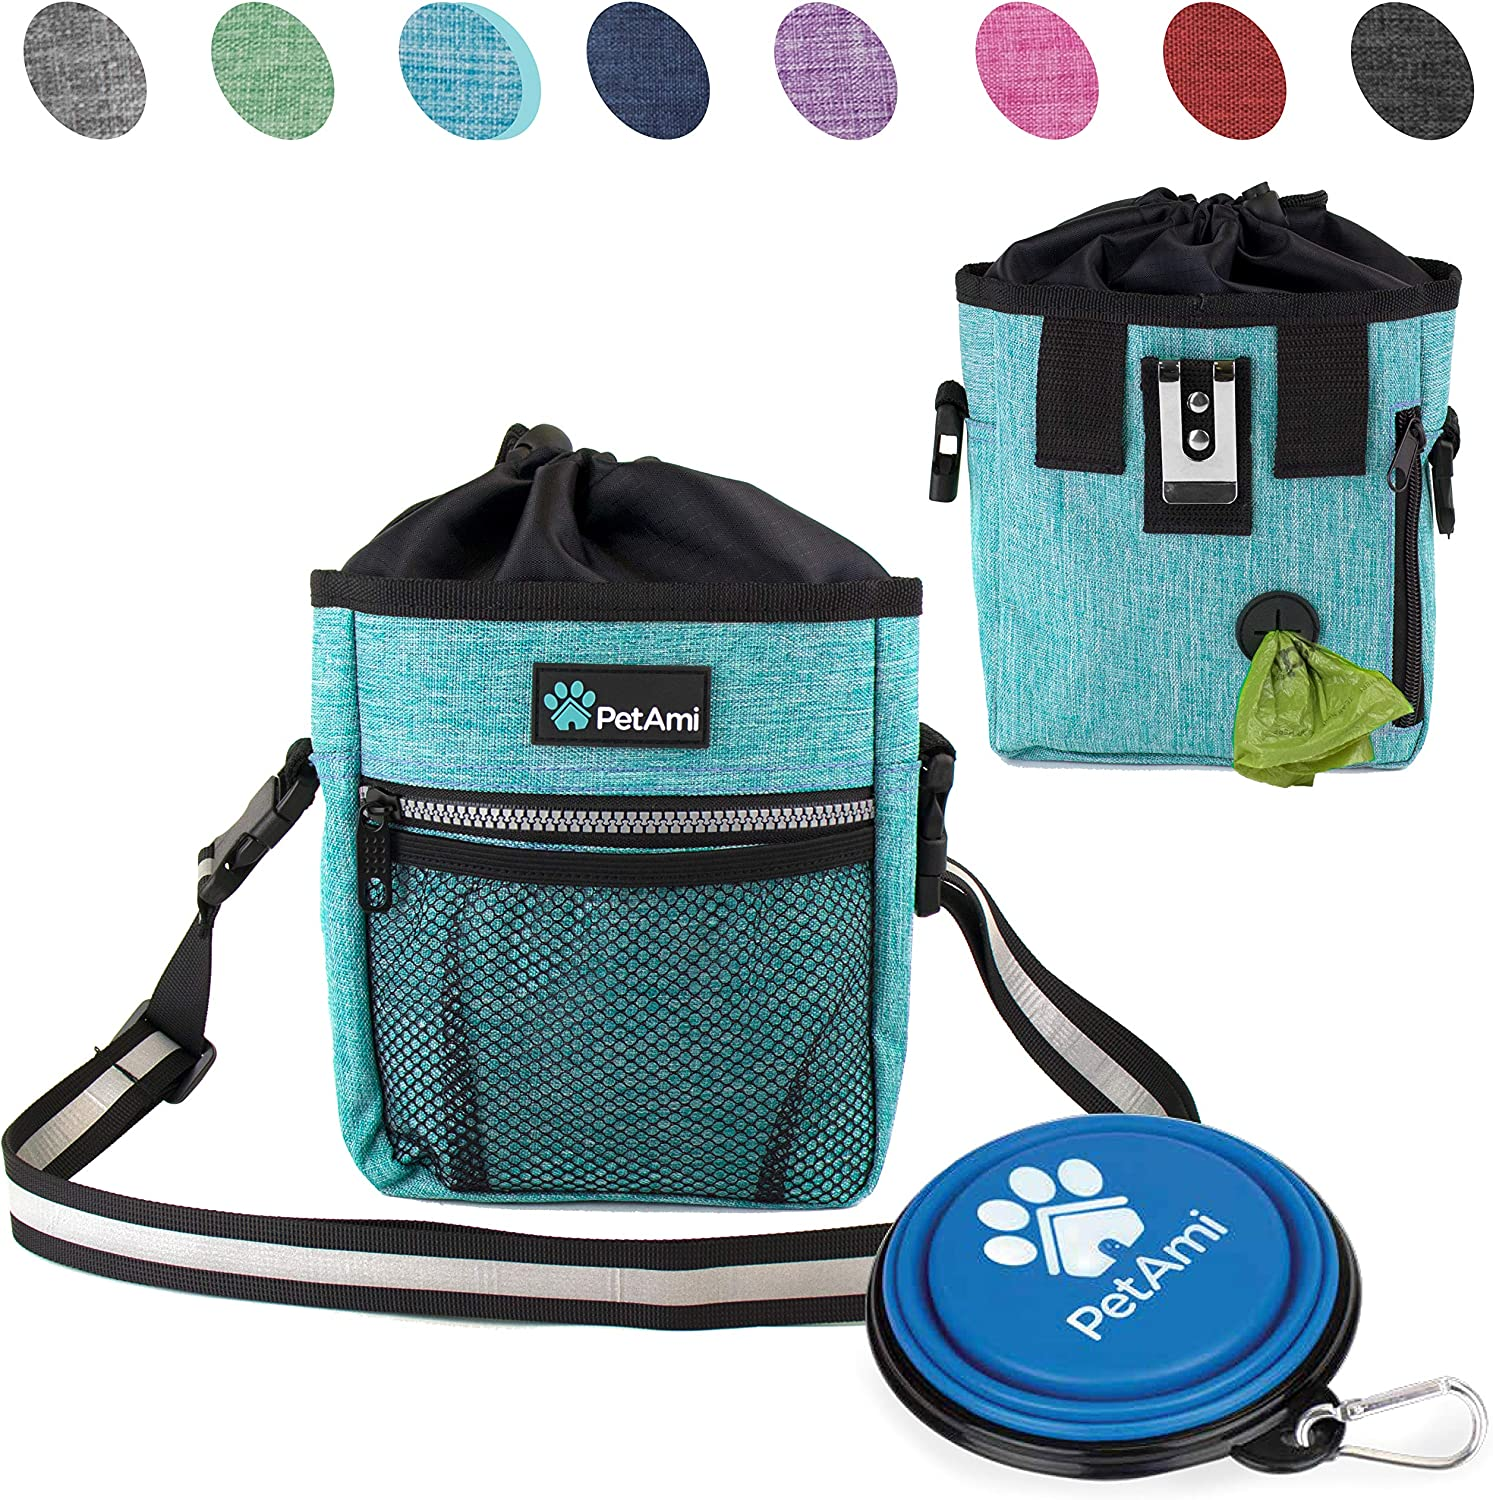 PetAmi Dog Treat Pouch   Dog Training Pouch Bag with Waist Shoulder Strap, Poop Bag Dispenser and Collapsible Bowl   Treat Training Bag for Treats, Kibbles, Pet Toys   3 Ways to Wear (Turquoise)